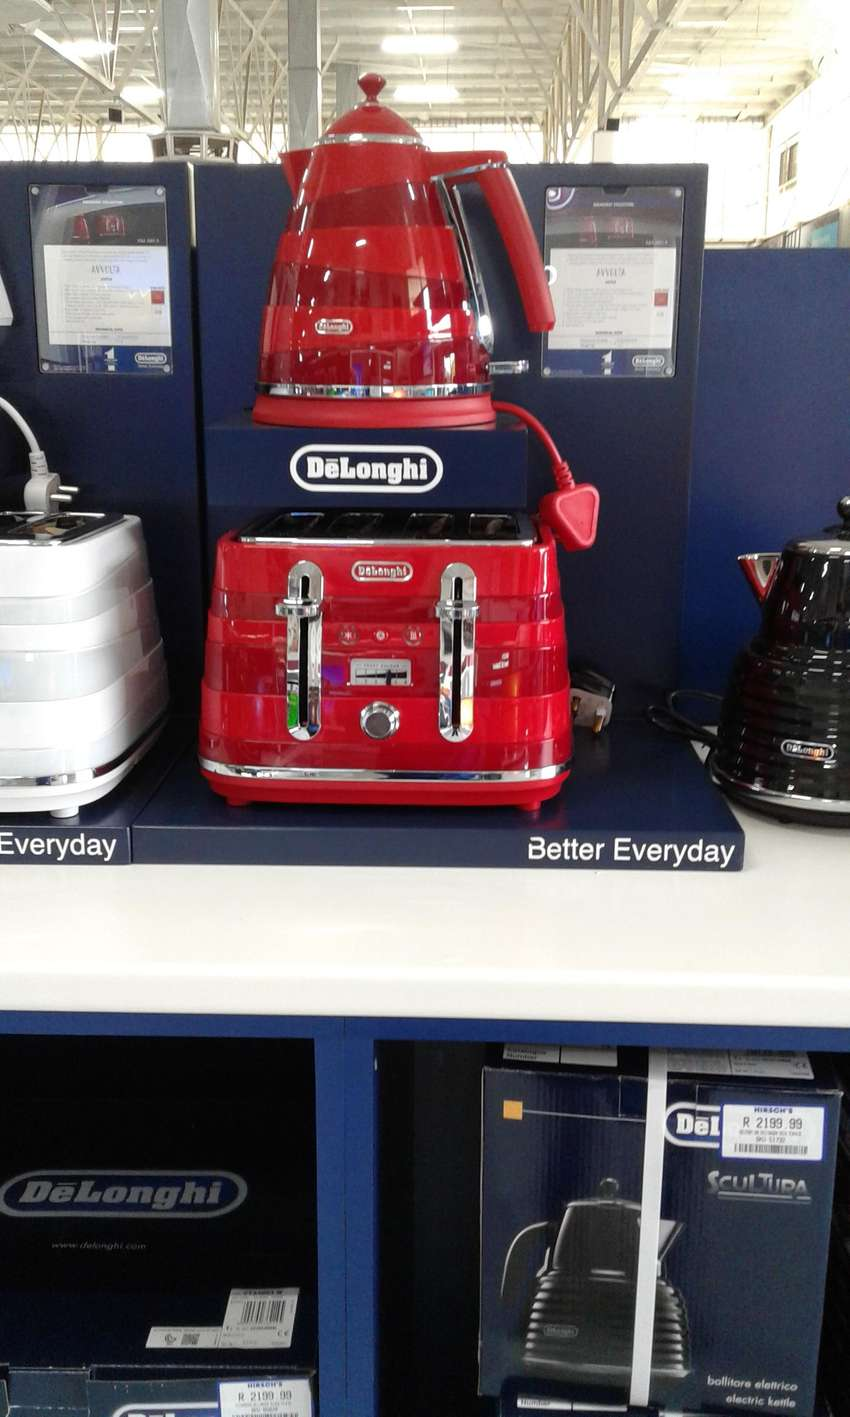 delonghi kettle and toaster 0